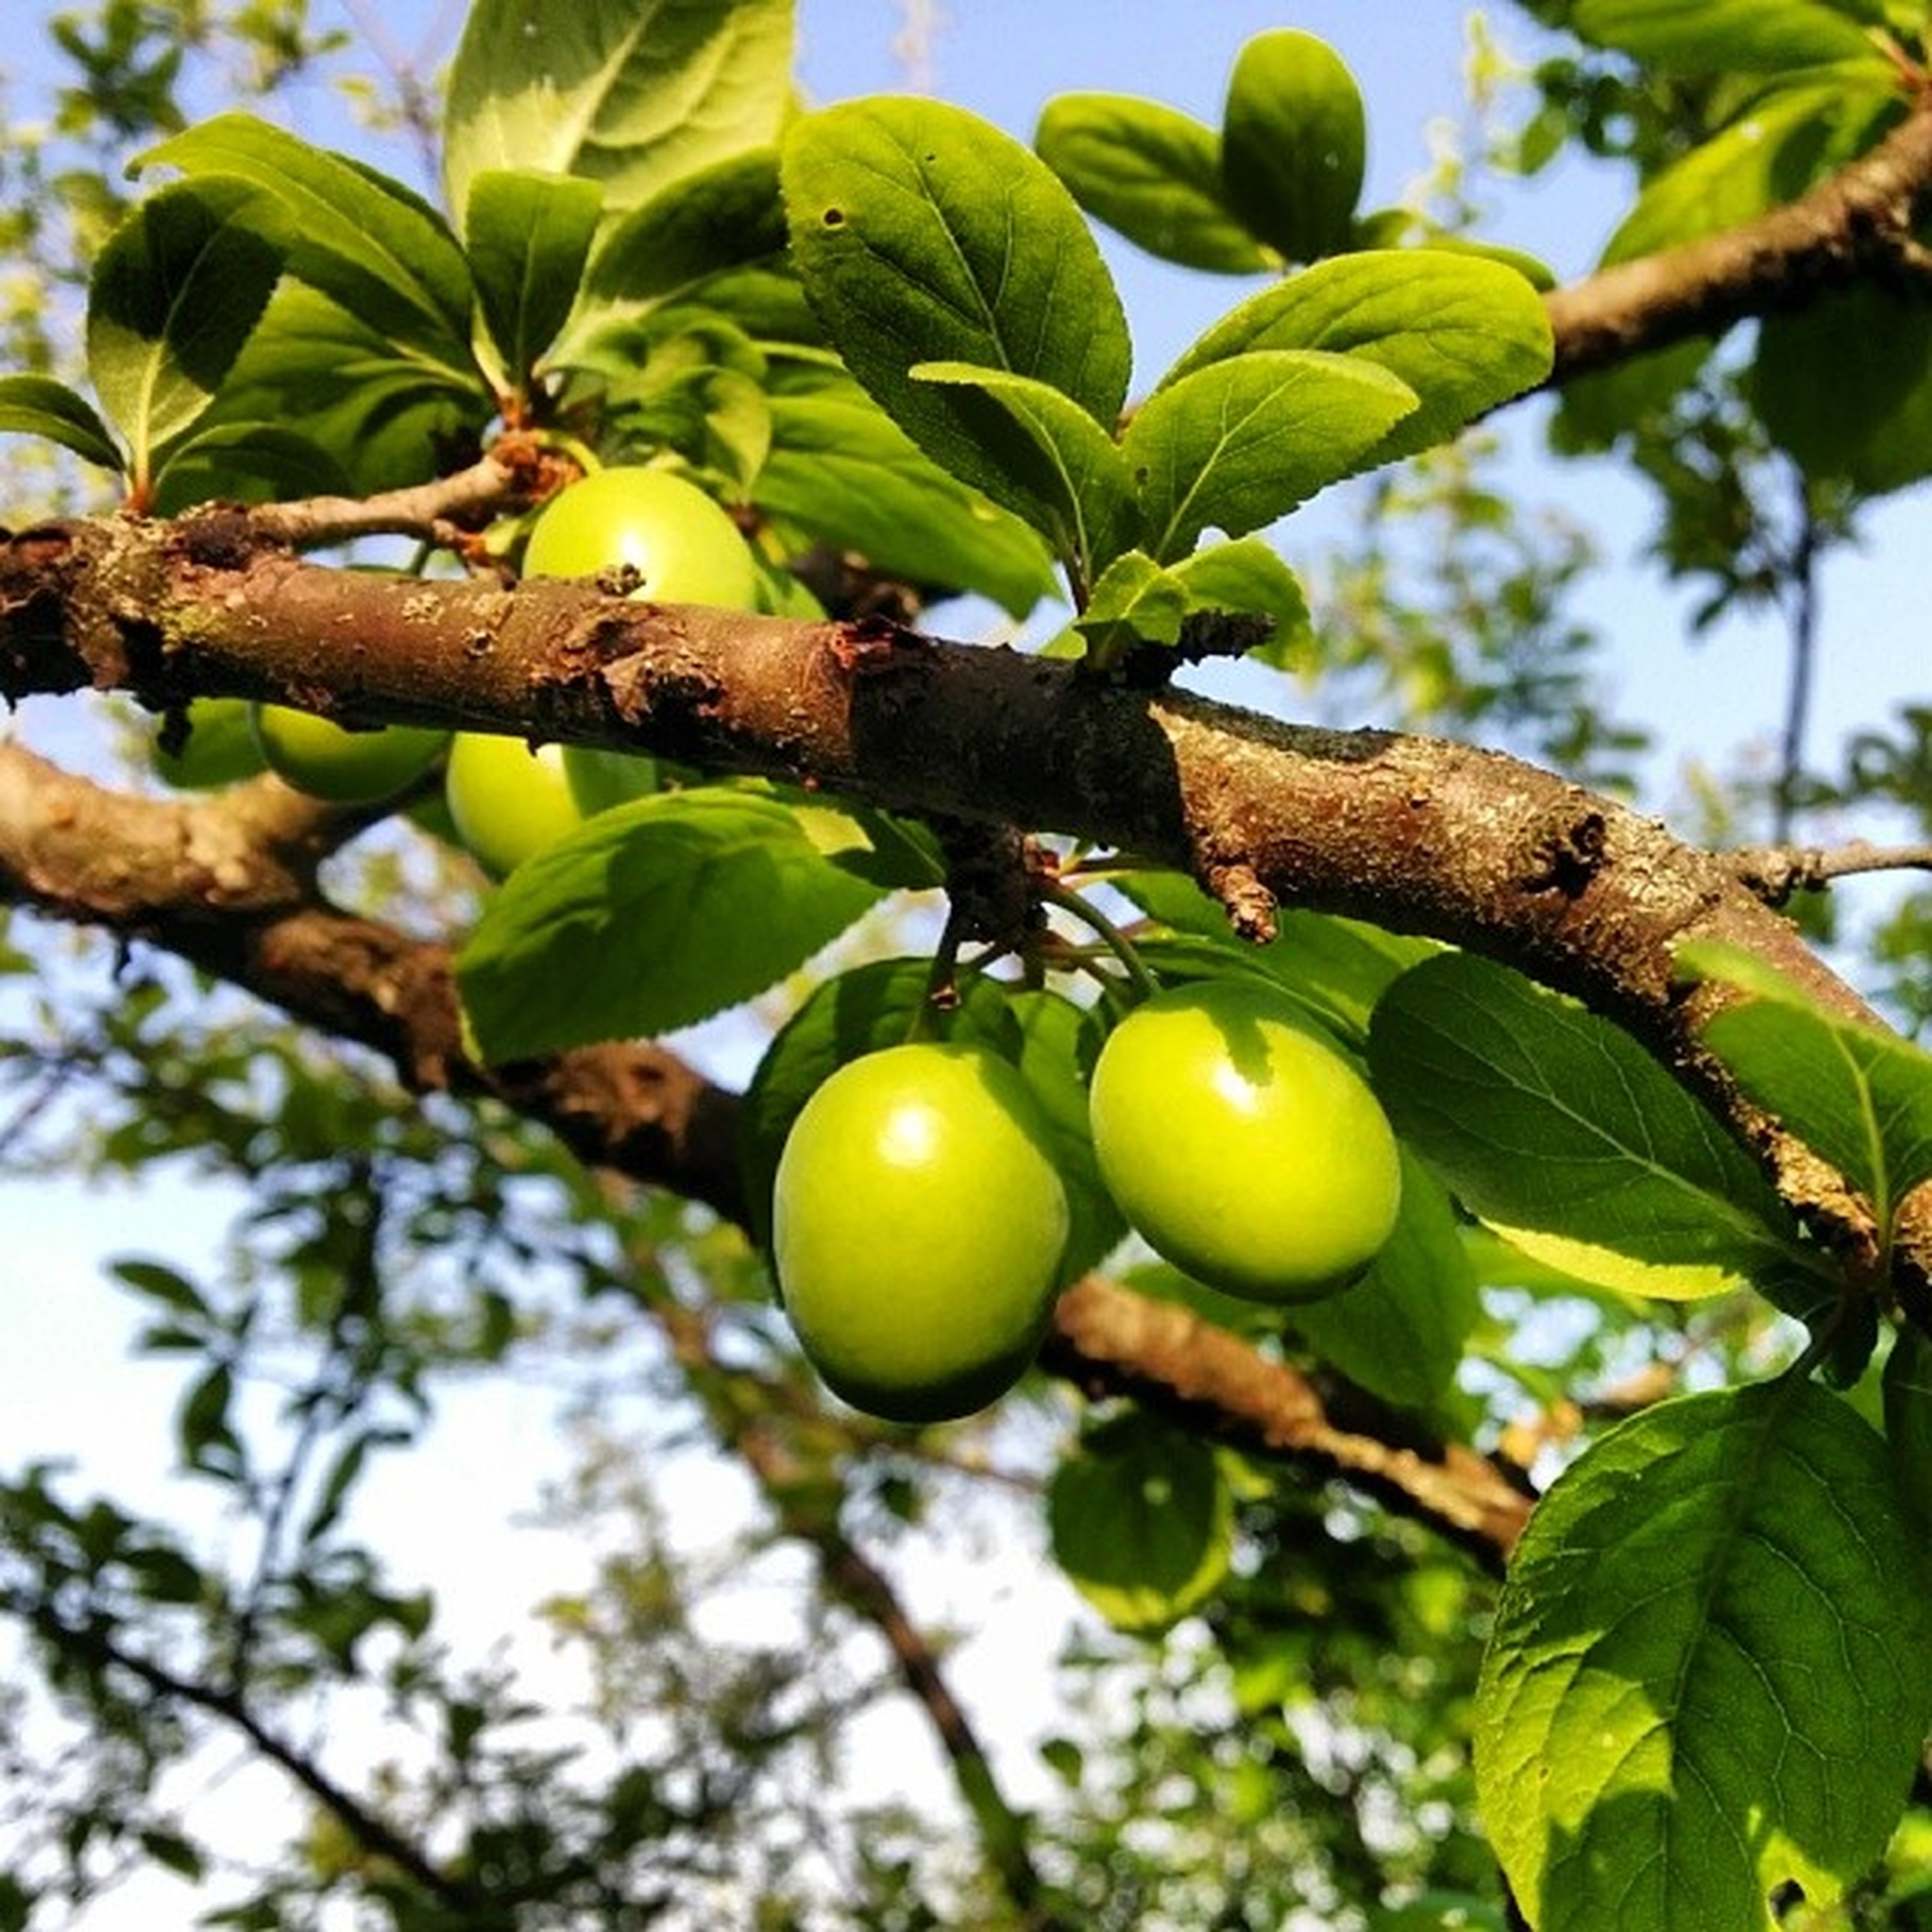 fruit, food and drink, tree, branch, food, healthy eating, green color, leaf, growth, close-up, freshness, hanging, focus on foreground, nature, ripe, low angle view, day, unripe, outdoors, no people